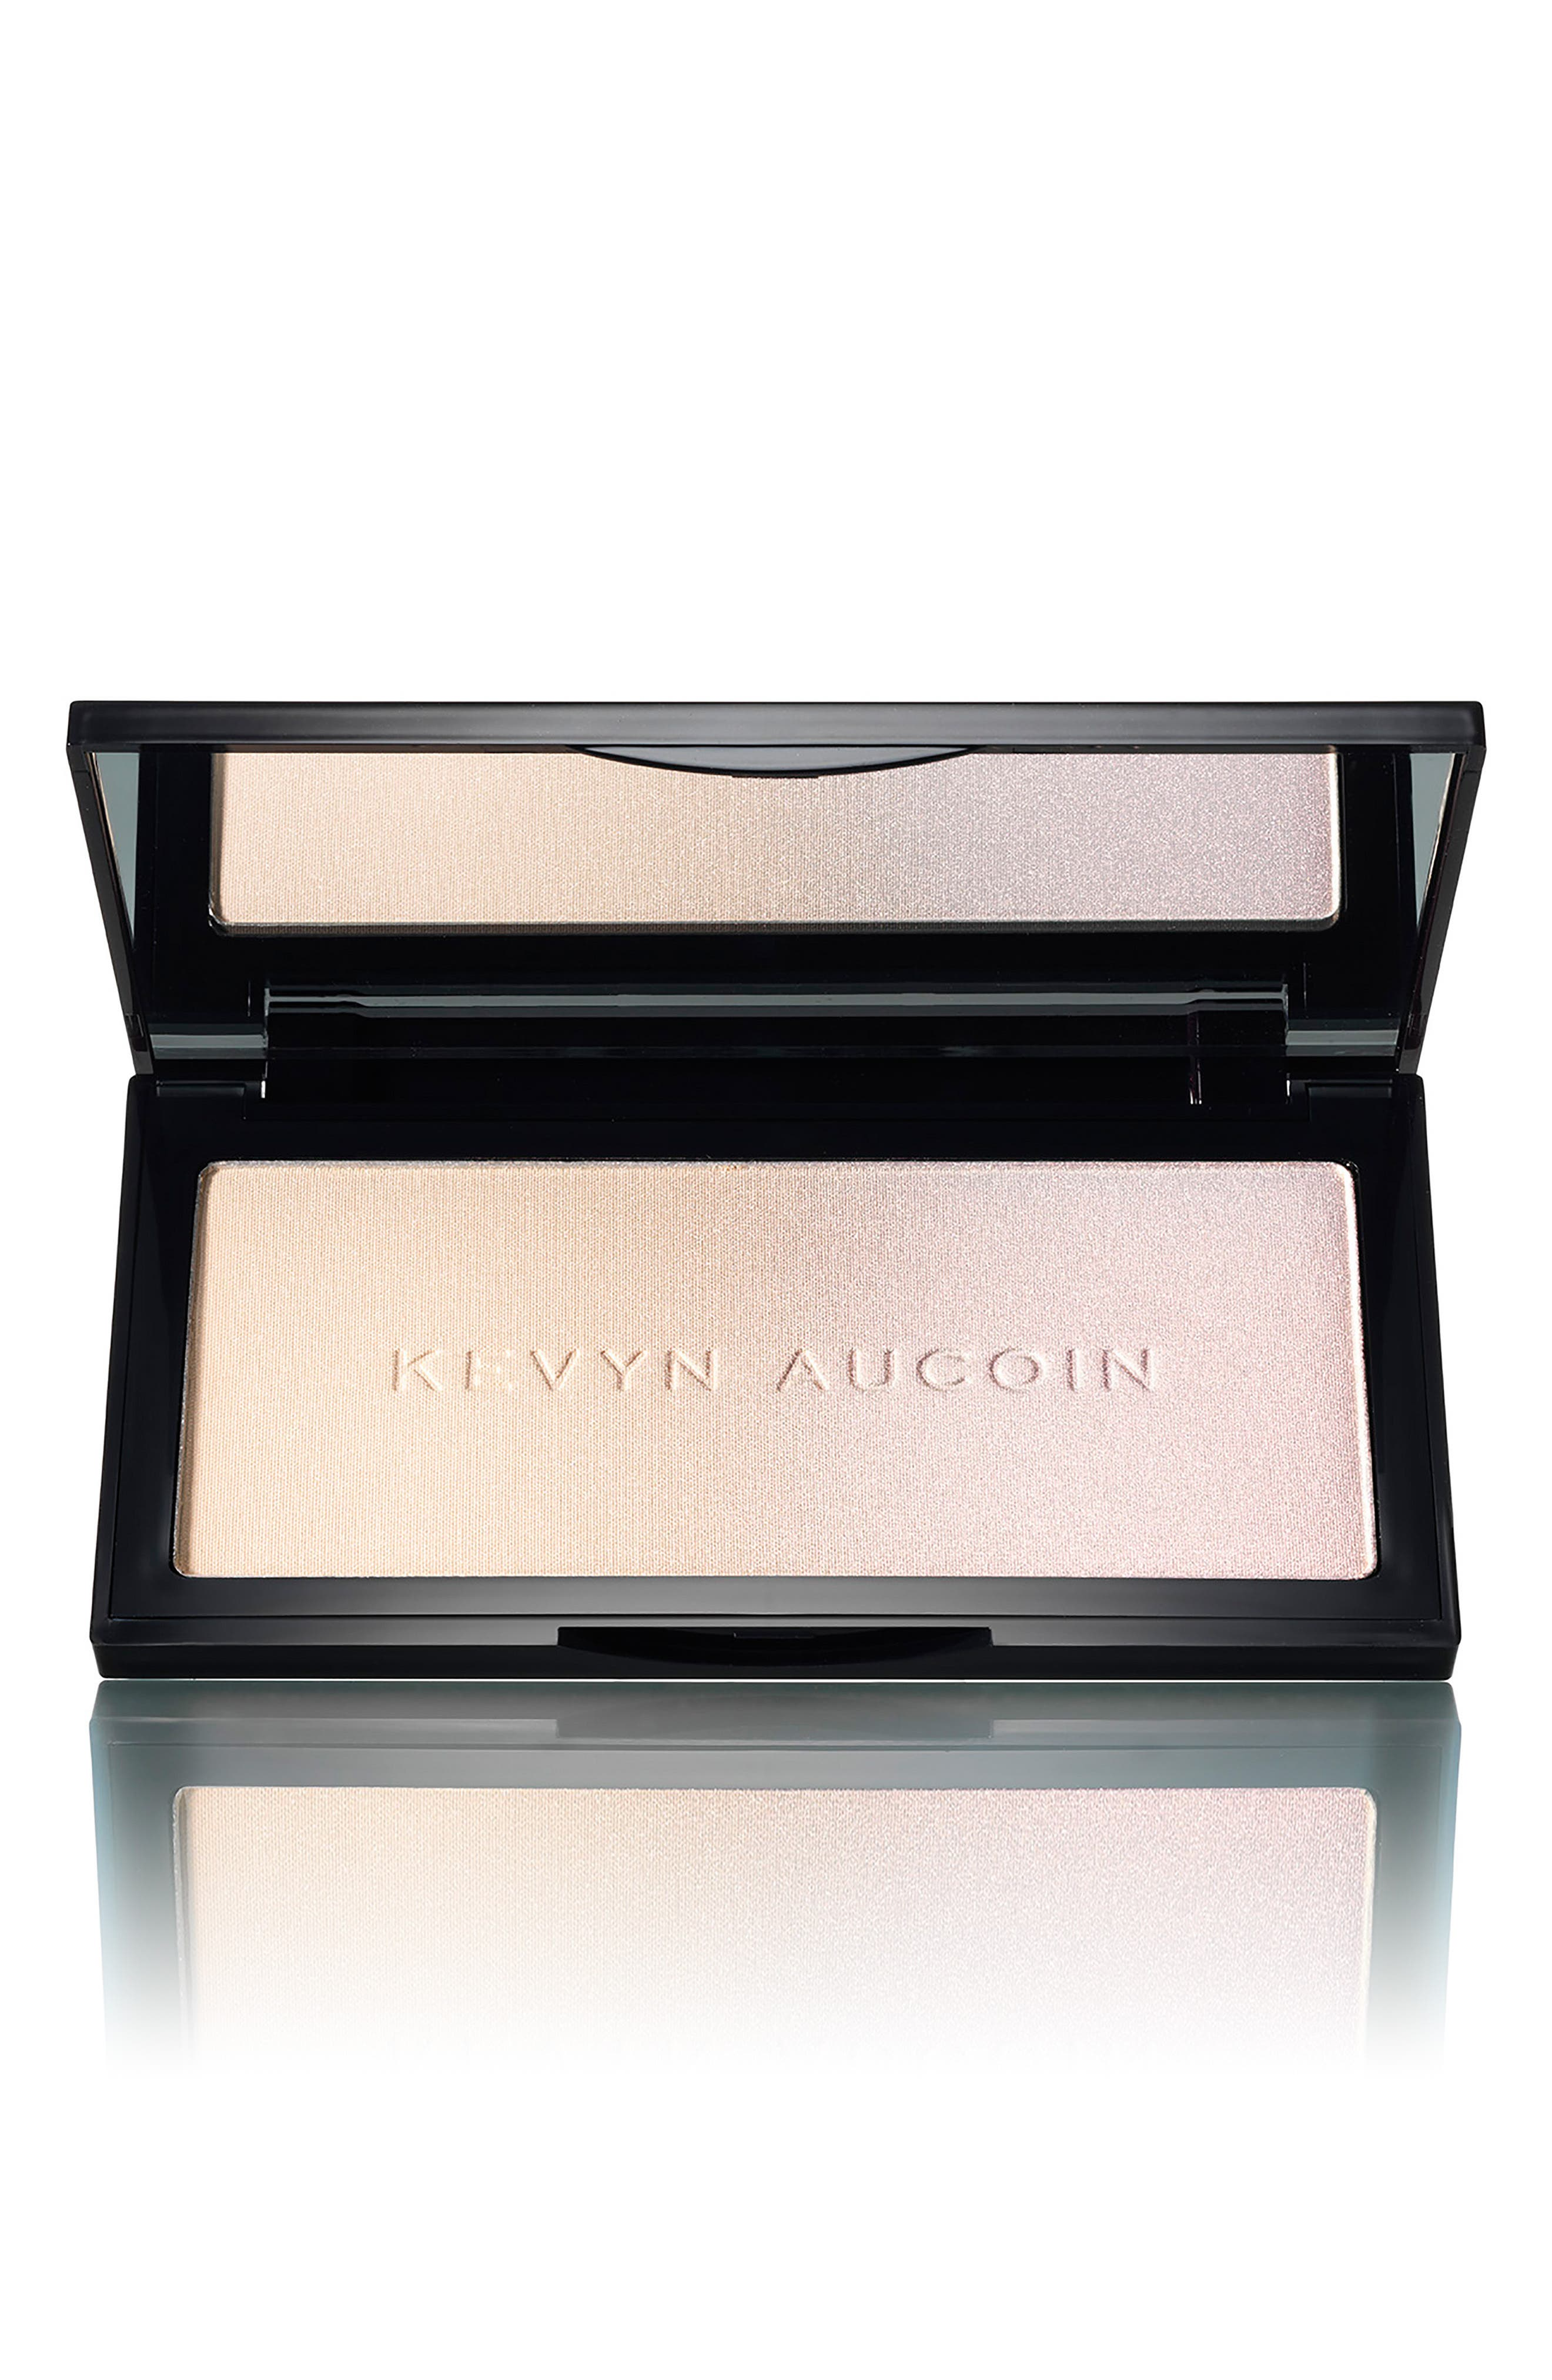 Main Image - SPACE.NK.apothecary Kevyn Aucoin Beauty The Neo-Setting Powder